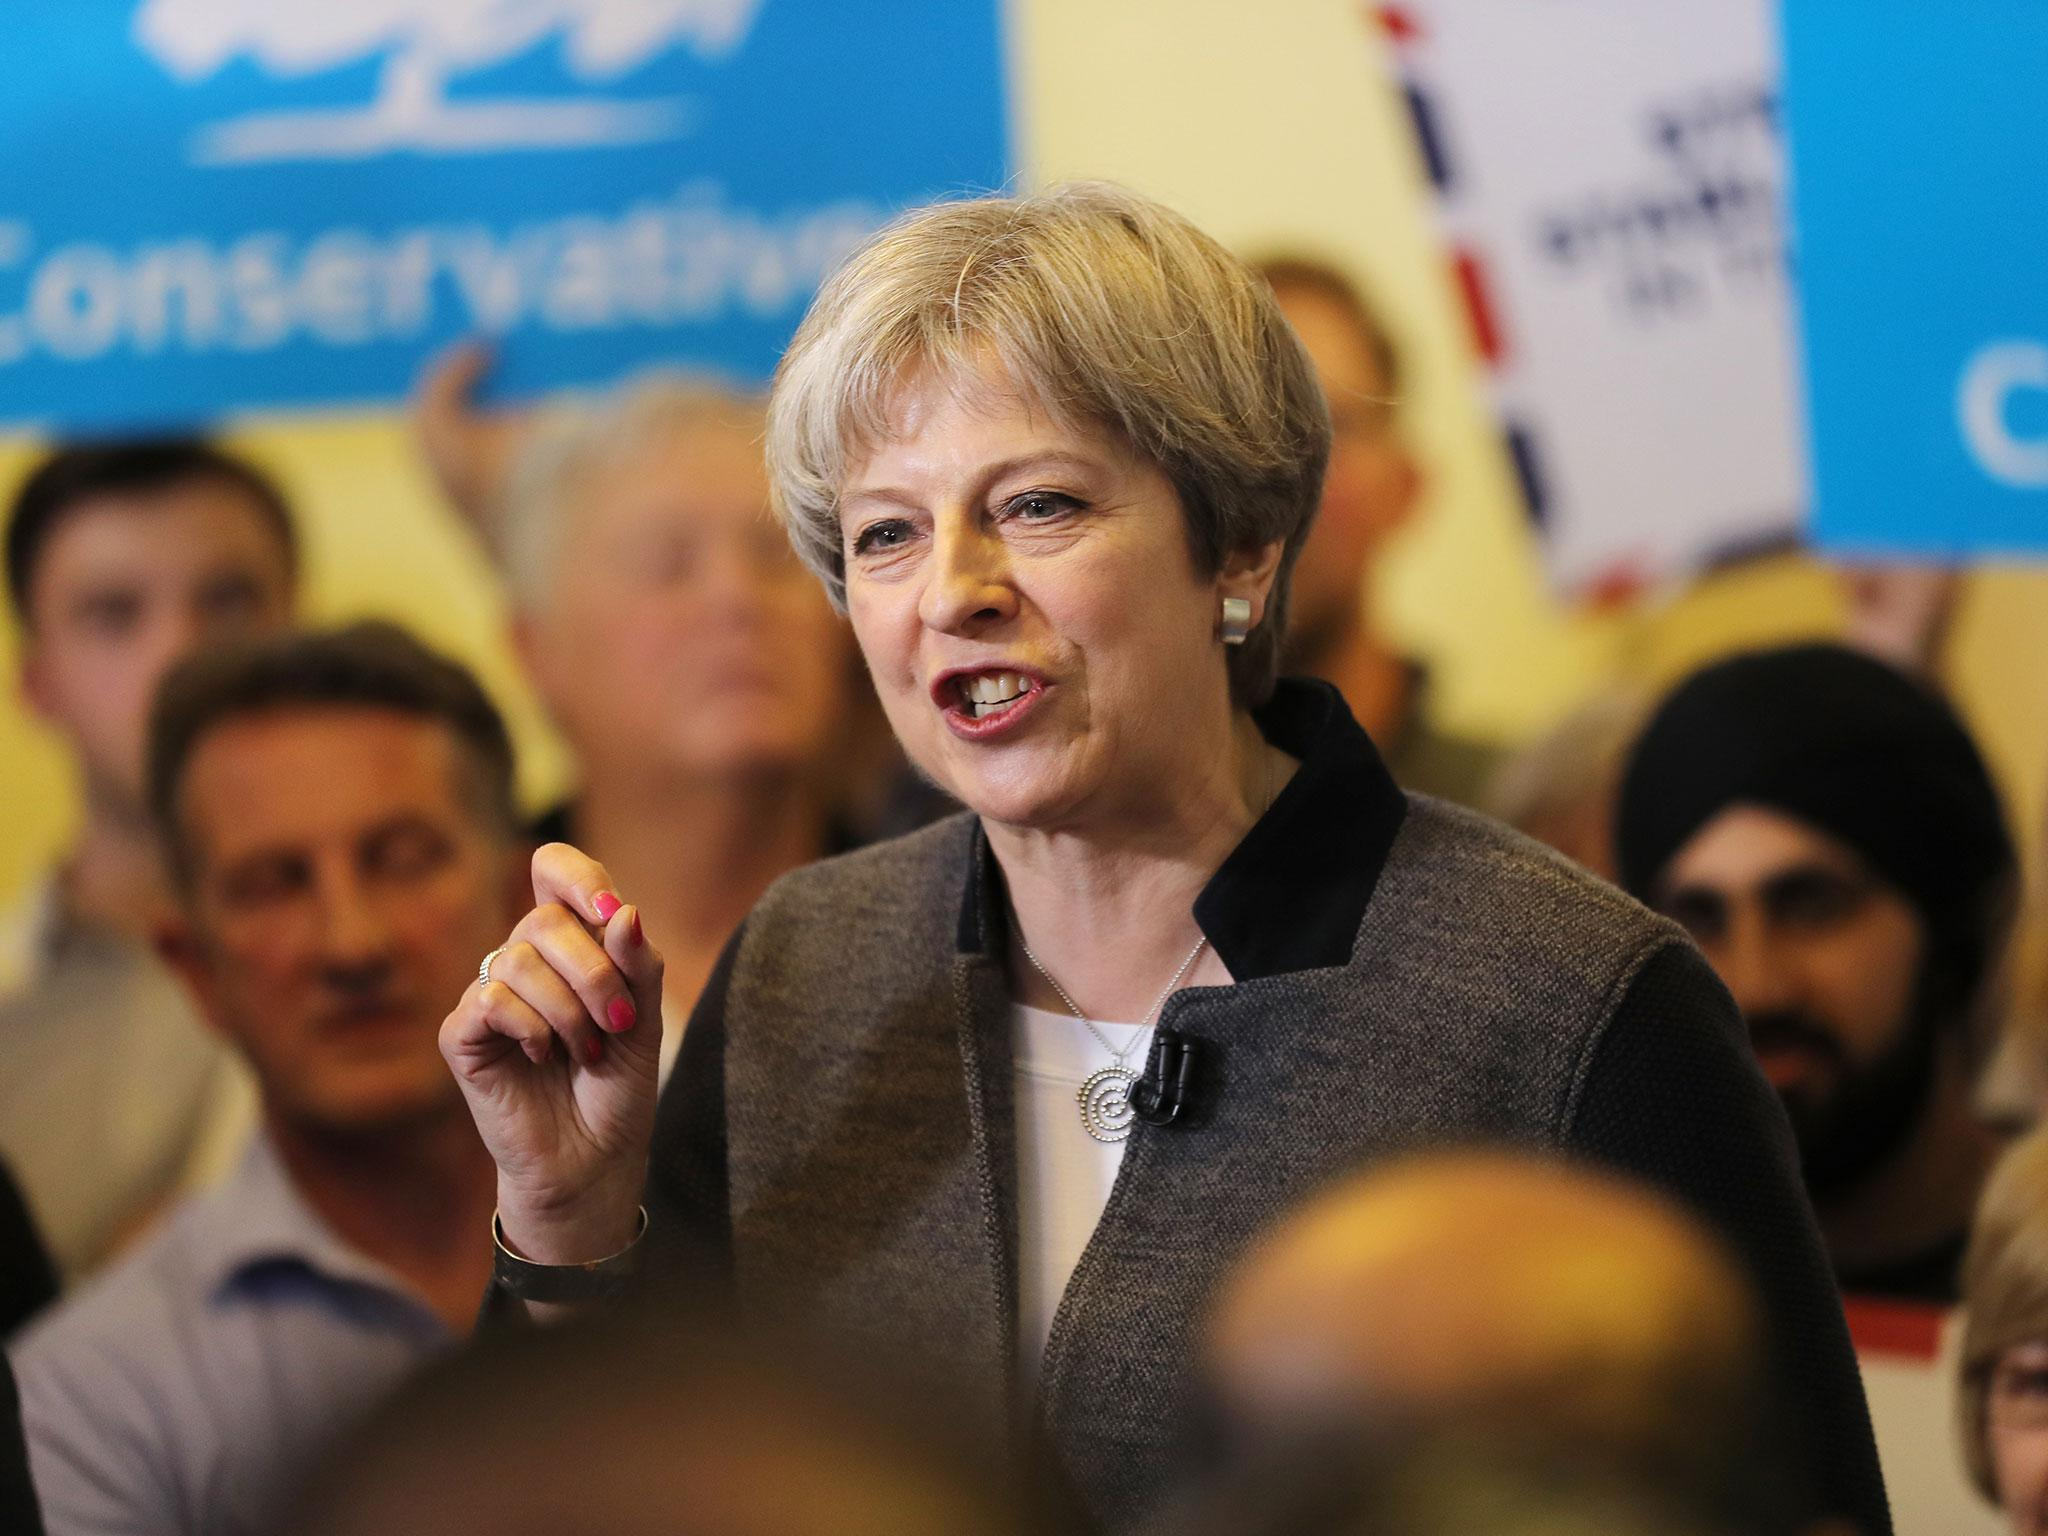 May's Immigration Plan 'causing Serious Damage To The Uk Universities'